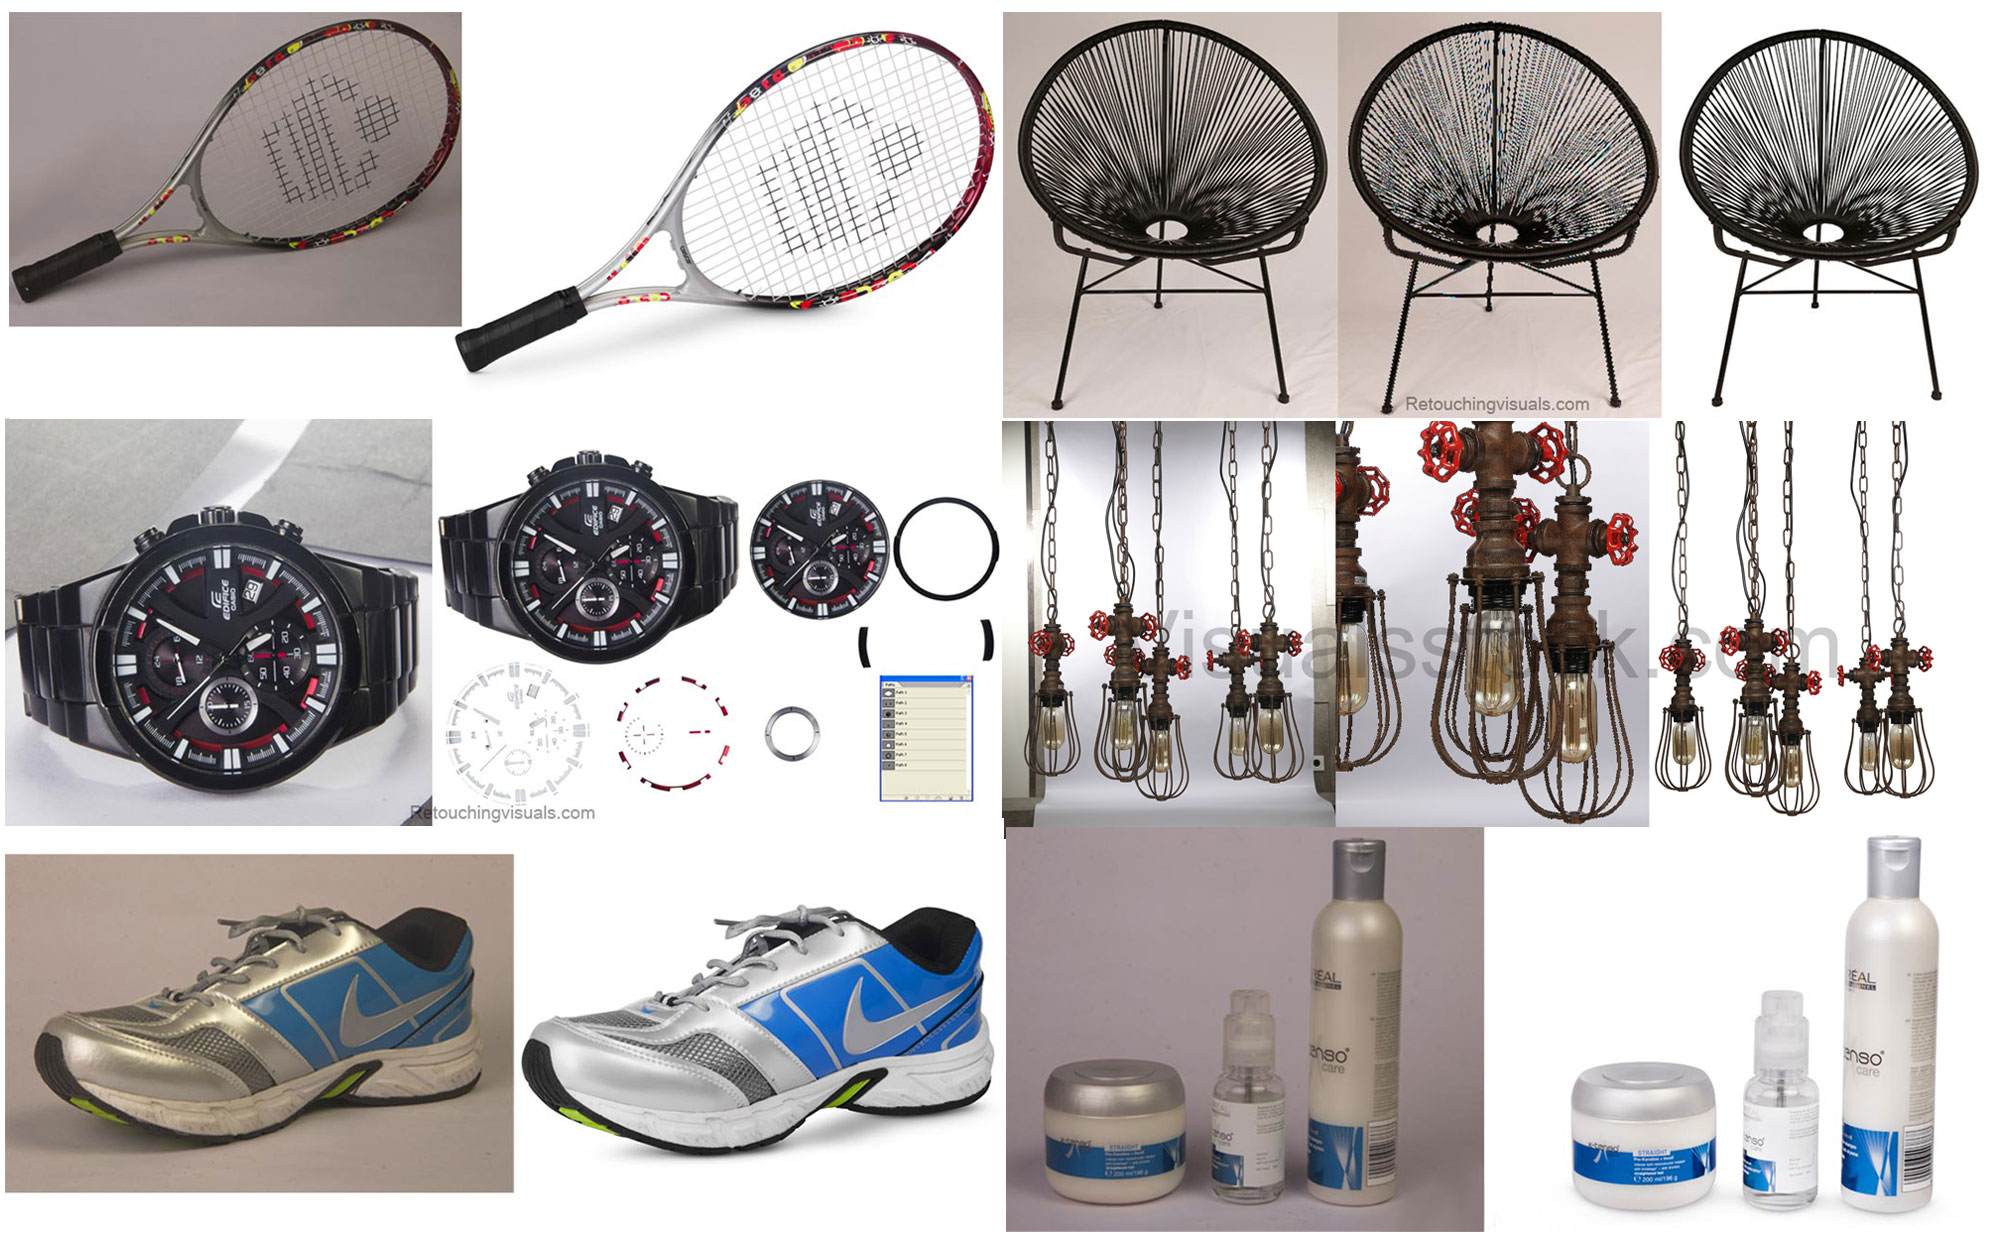 High Quality Clipping Path Services.   We Are Giving Hand Made Clipping Path Services From Last 6 Years. In Digital Photography World There Is A Huge Demand Of The Images Which Excel At The Quality And Have High Definition Structure, To Meet Up With The Growing Expectations Of The Public Demands And Needs; There Are Various Clipping Path Companies All Over The World. We Are Here For The Same; We Are Promising And Safe, Yes Safe. In This Quick Advance Of The Technology, There Are Crime Rates Which Also Touch The Peaks When It Comes To Cyber Crimes. But Here, We Ensure You That Your Private Data And Information Will Be Kept Safe Both Offline And Online.   High Quality Clipping Path Service Provider With Free Samples.